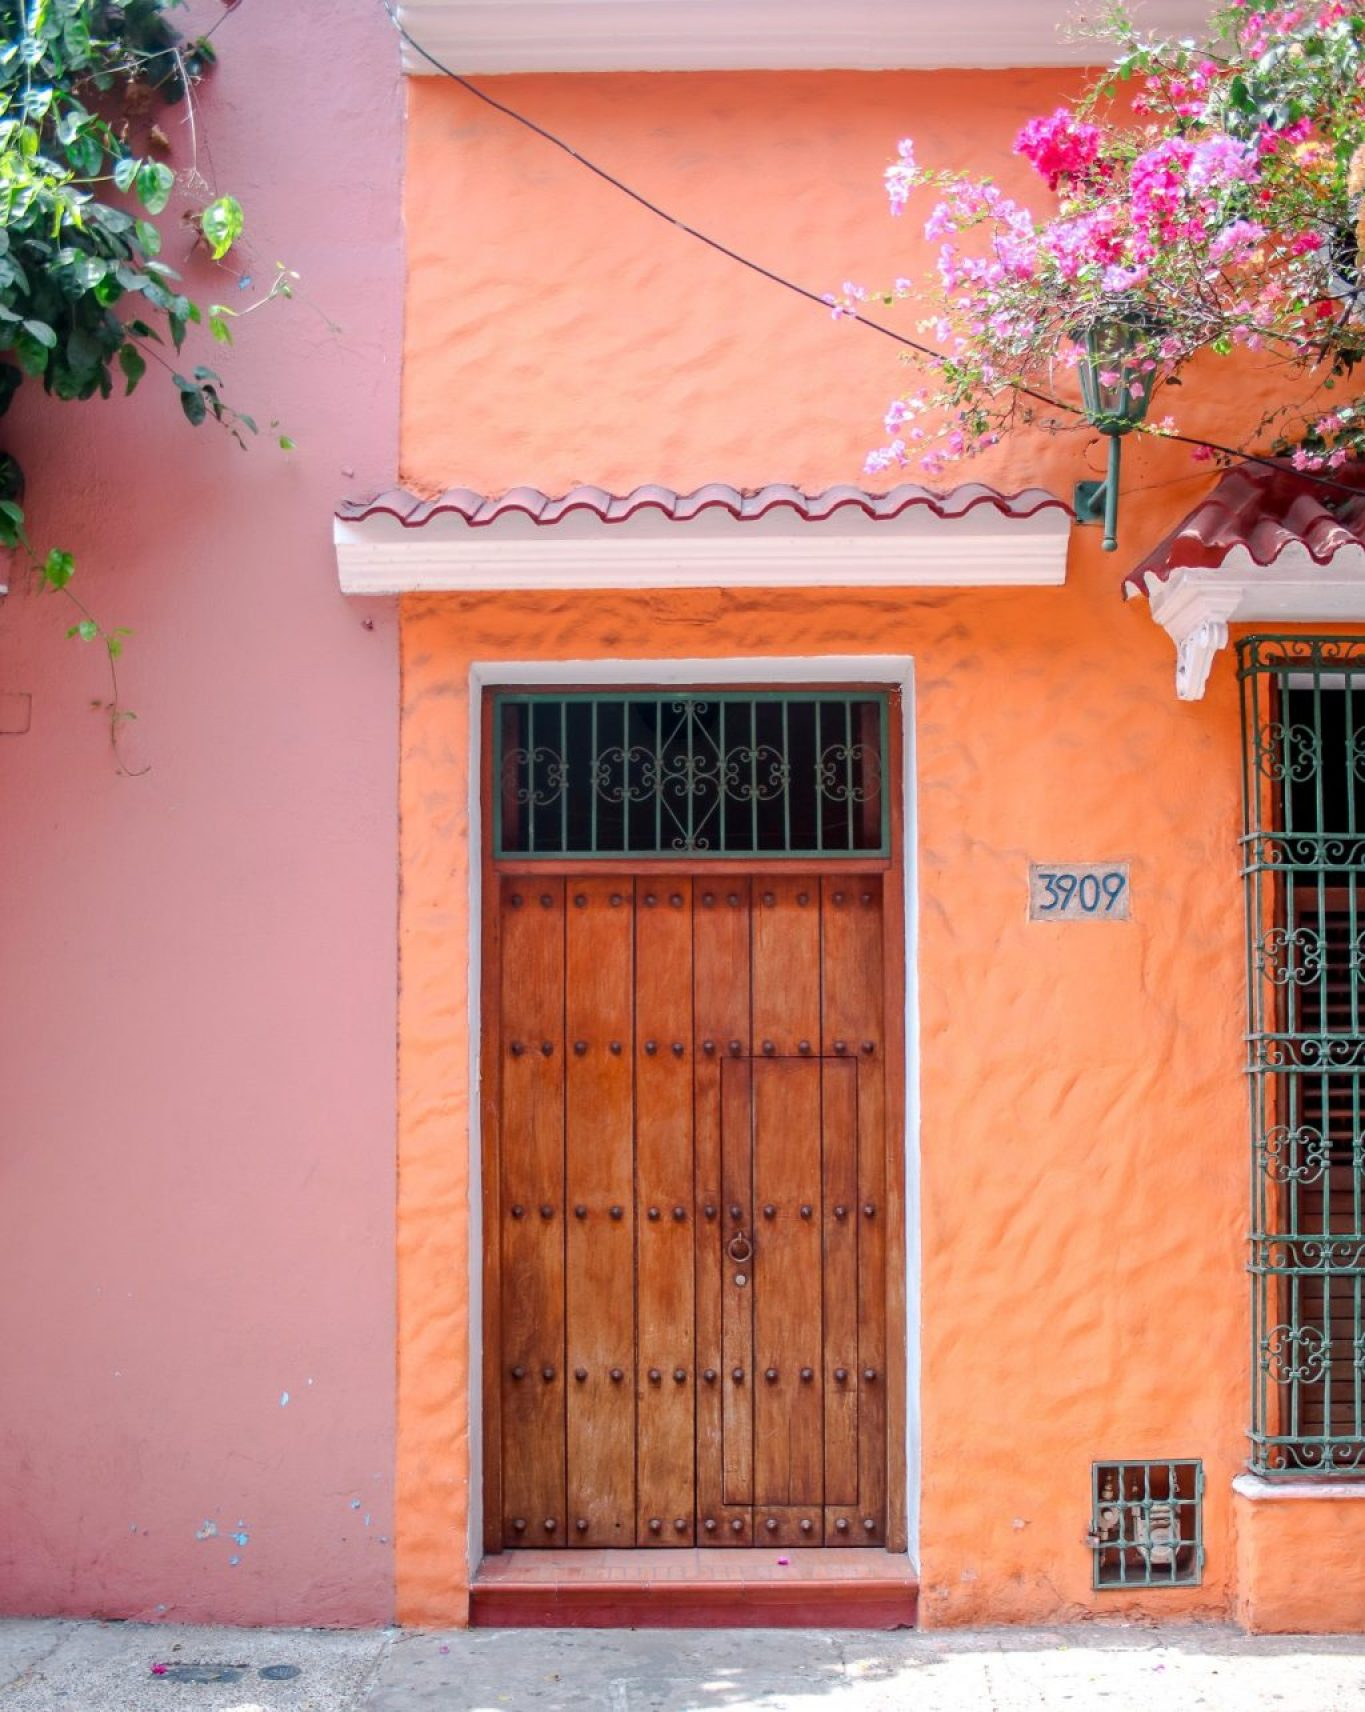 Photos To Inspire You To Visit Cartagena, Colombia! This colorful city is bursting with facades, rich history and Latin flare.